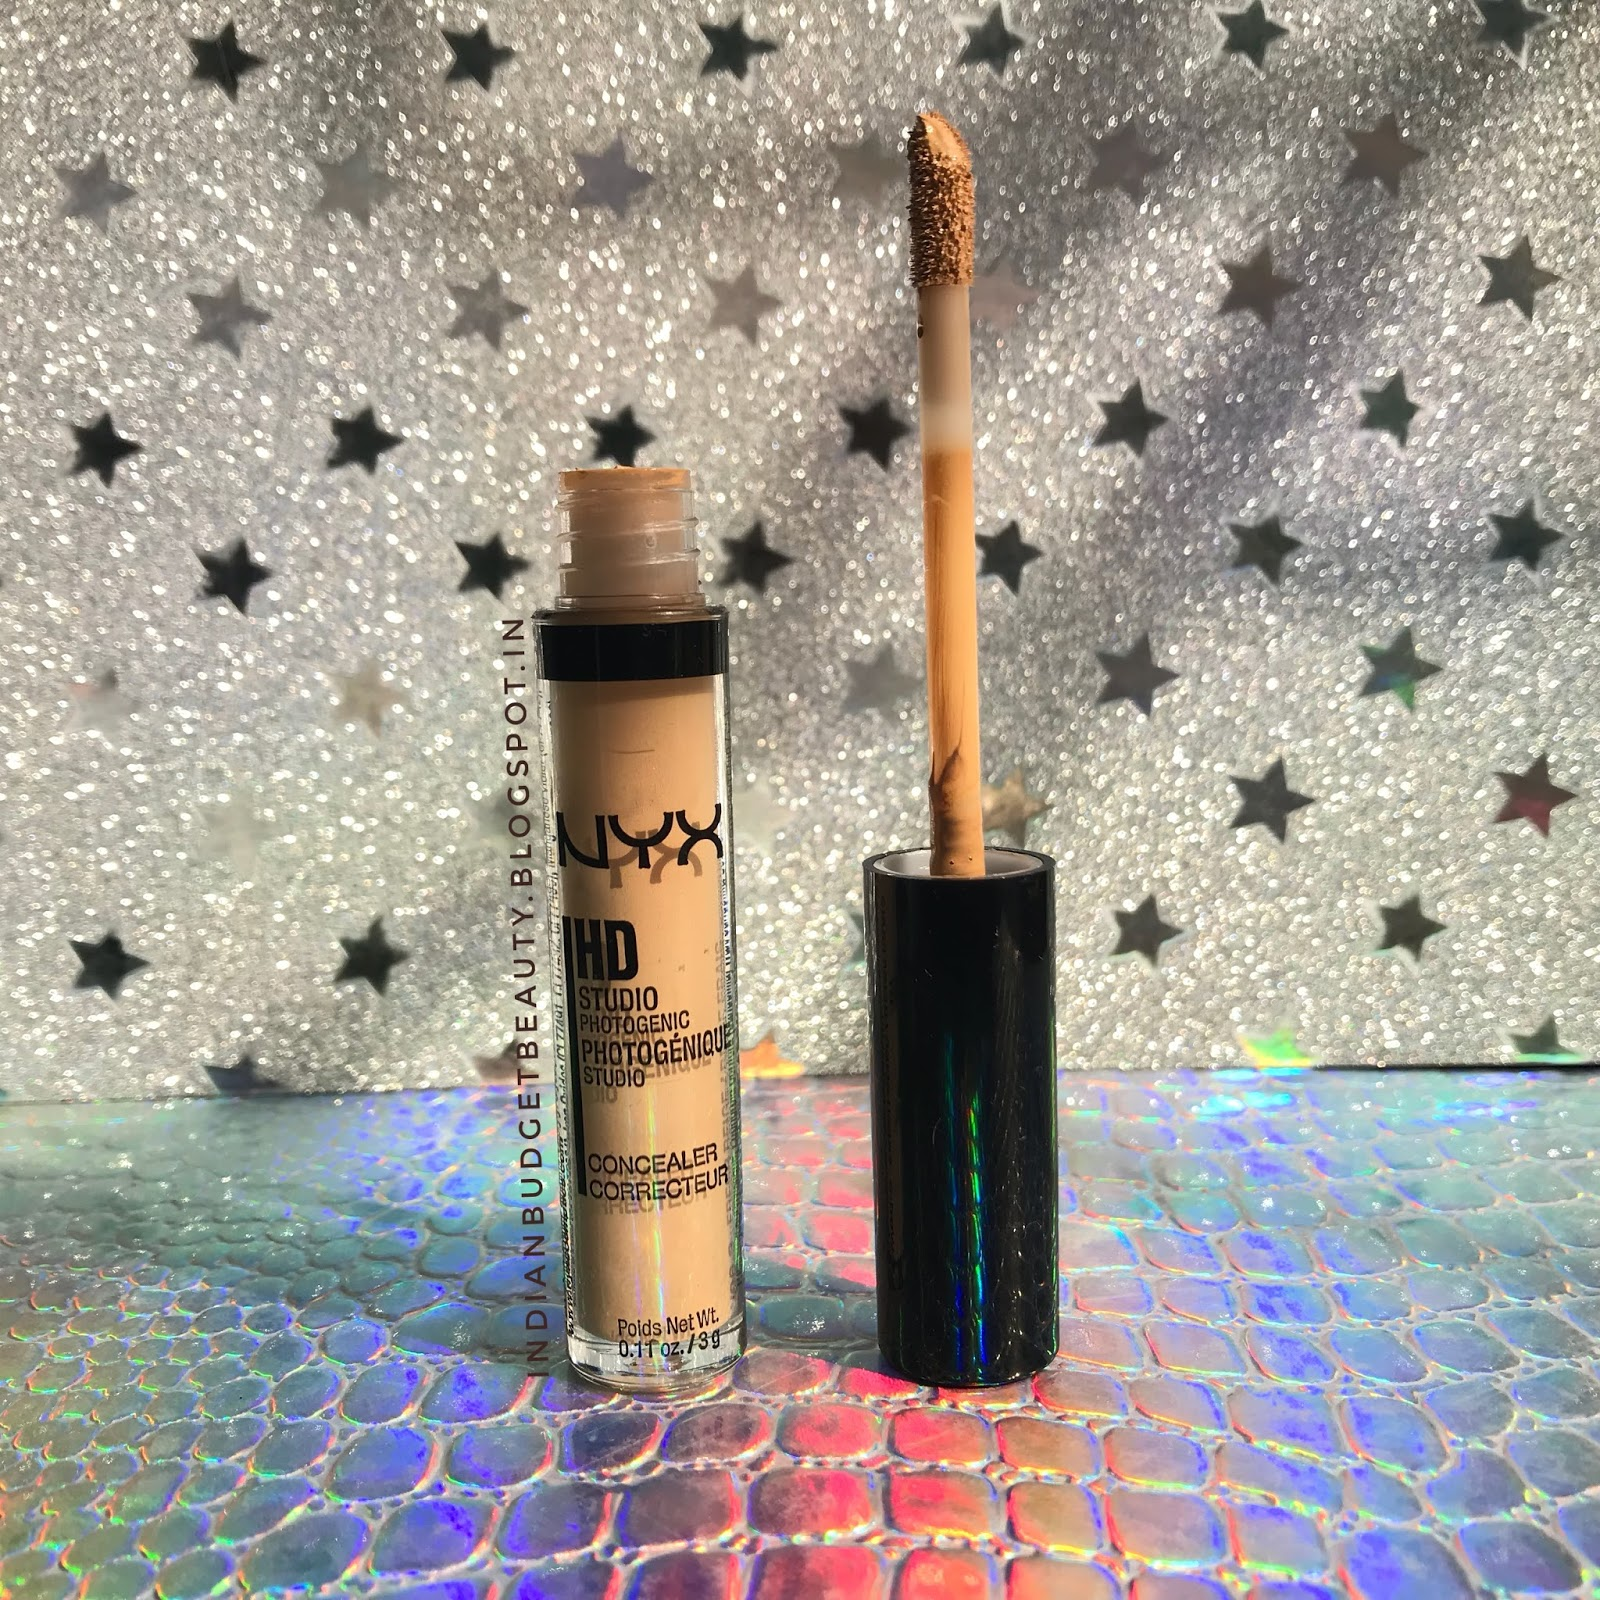 The packaging is very sleek and has a doe-foot applicator, which is perfect for concealing and correcting. The packaging is small and travel friendly and ...